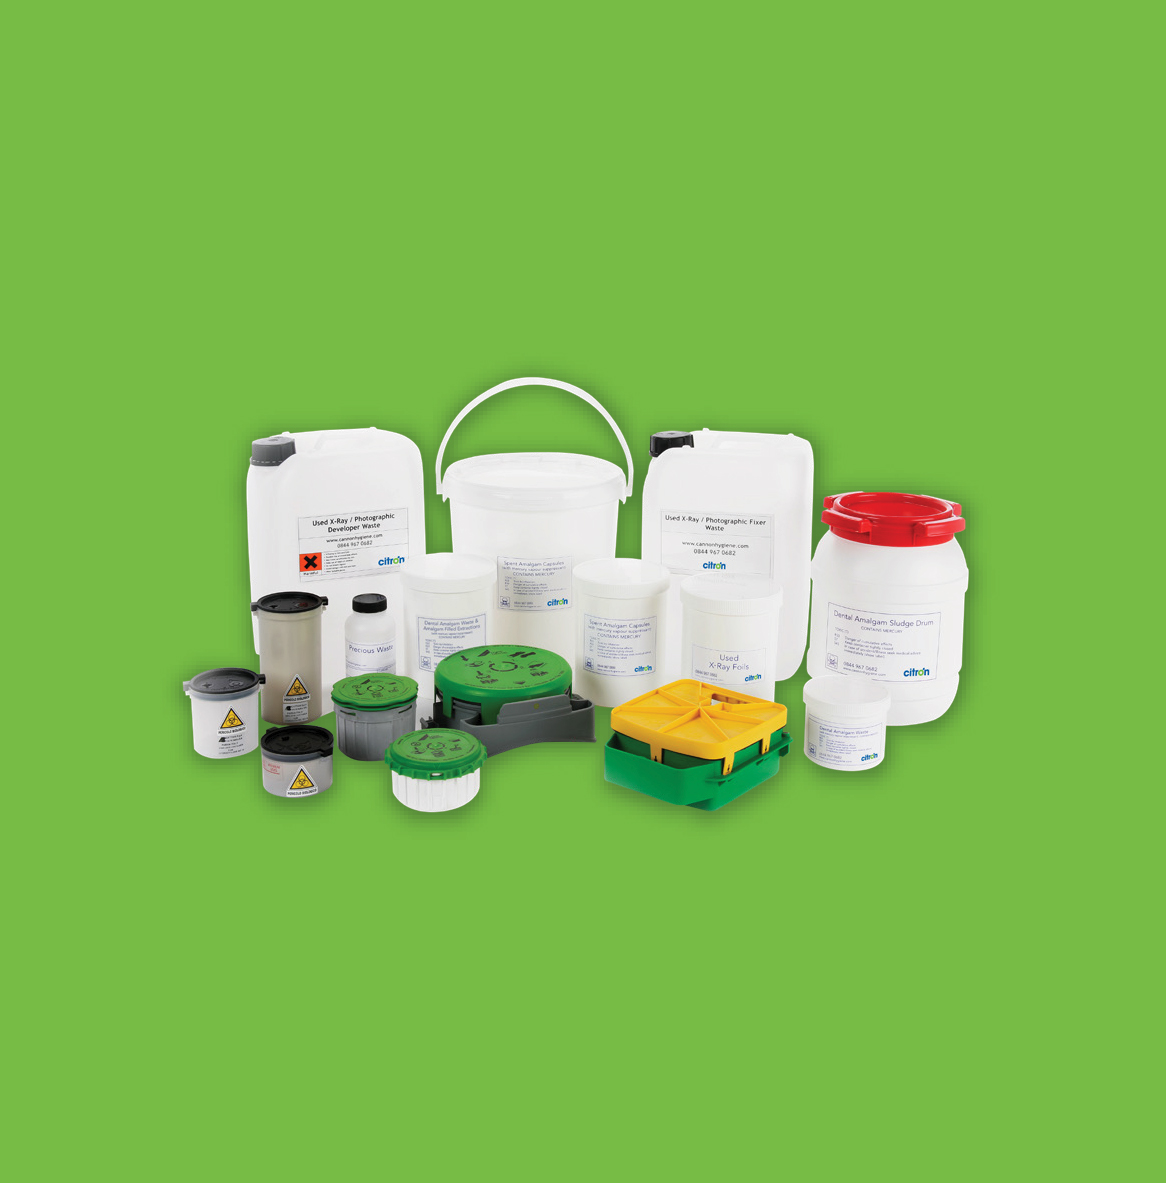 Dental waste management package contents - dental waste management